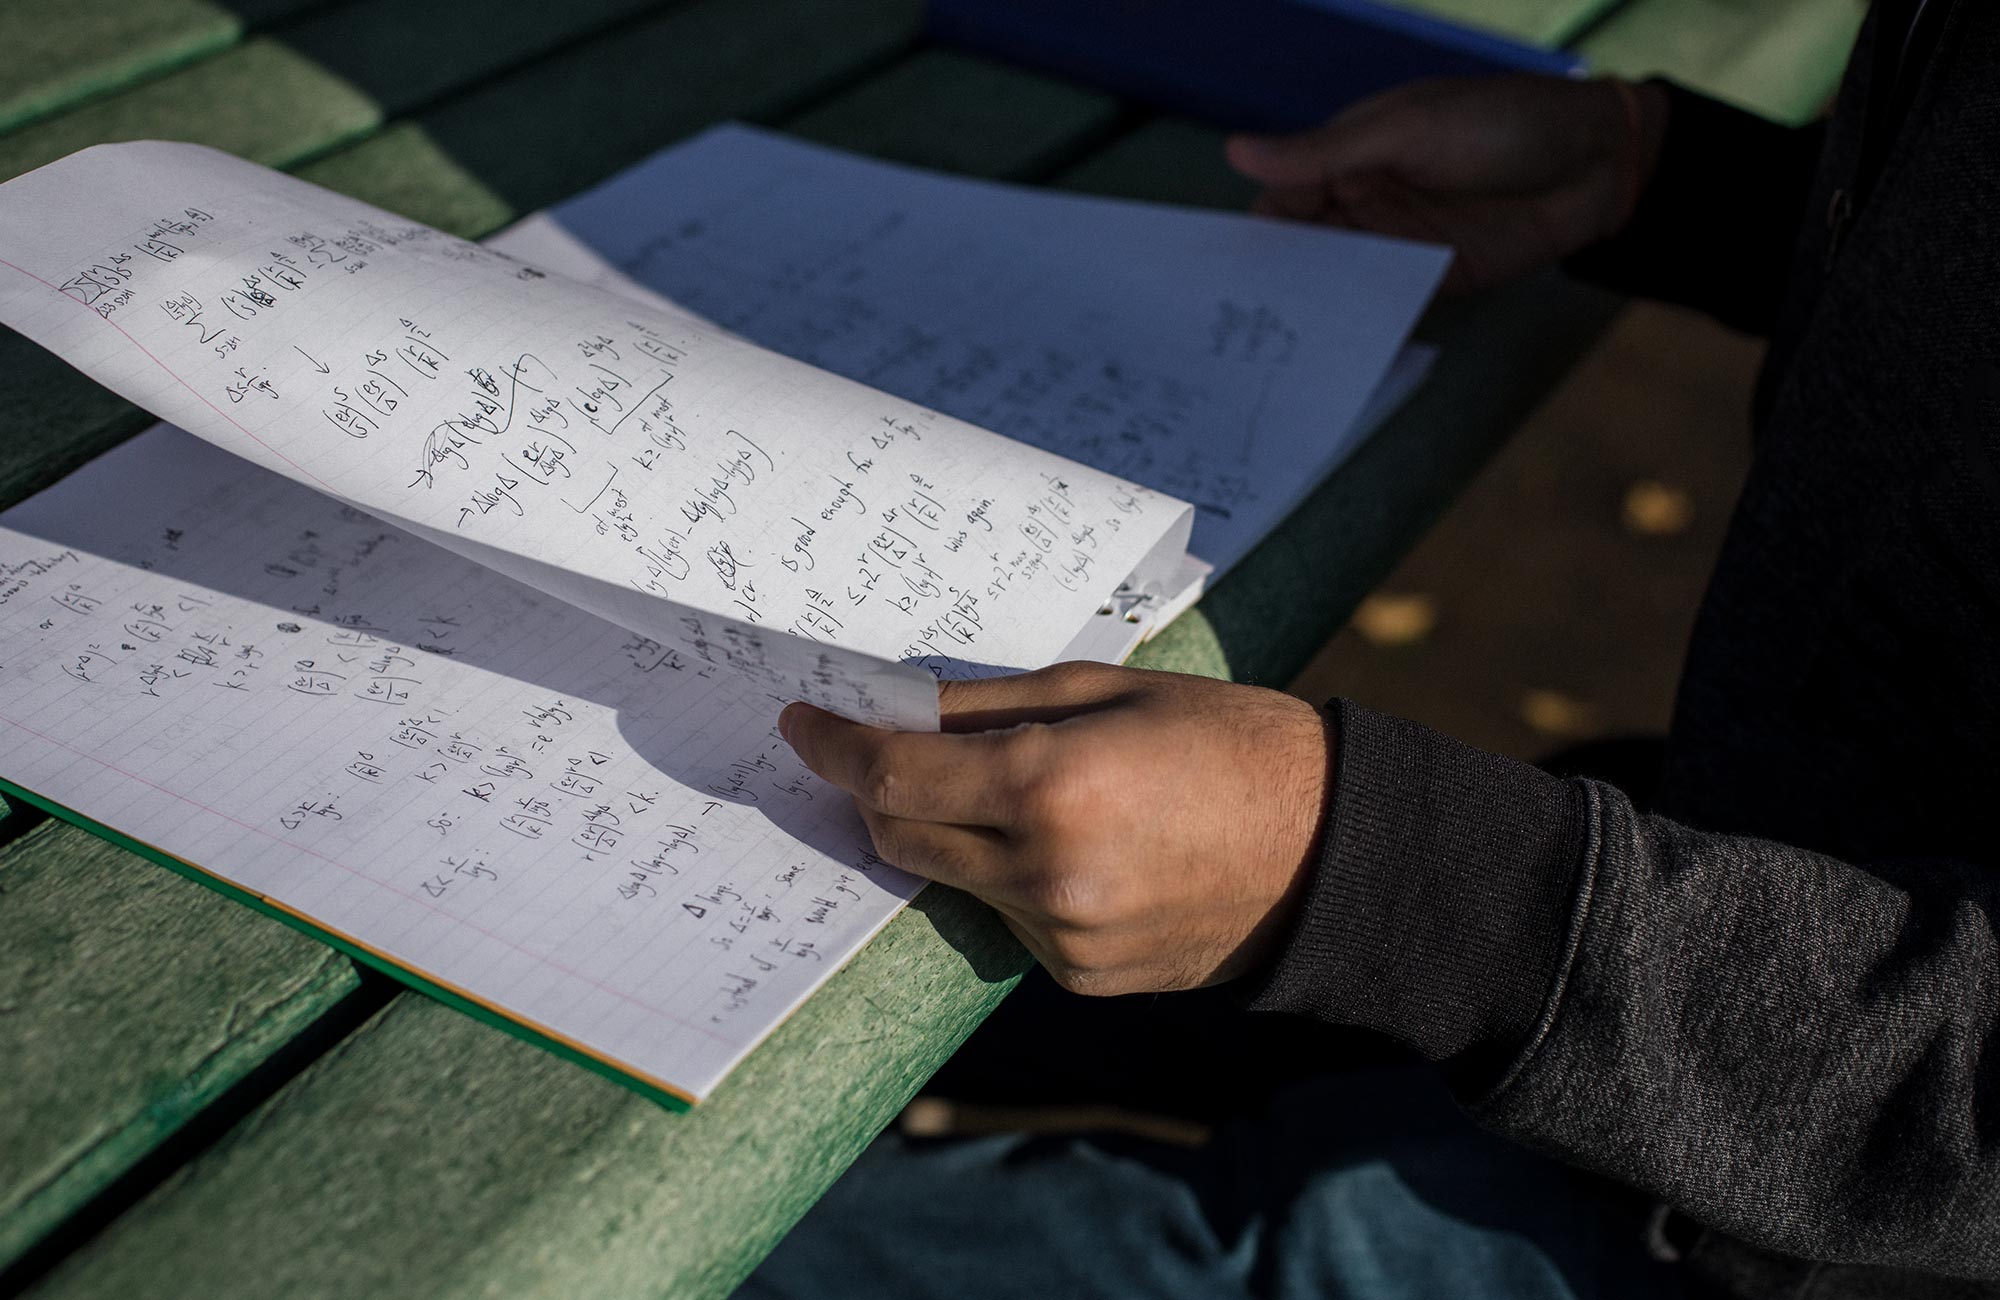 A photo of Ashwin Sah working at a park table, and a photo of his notebook